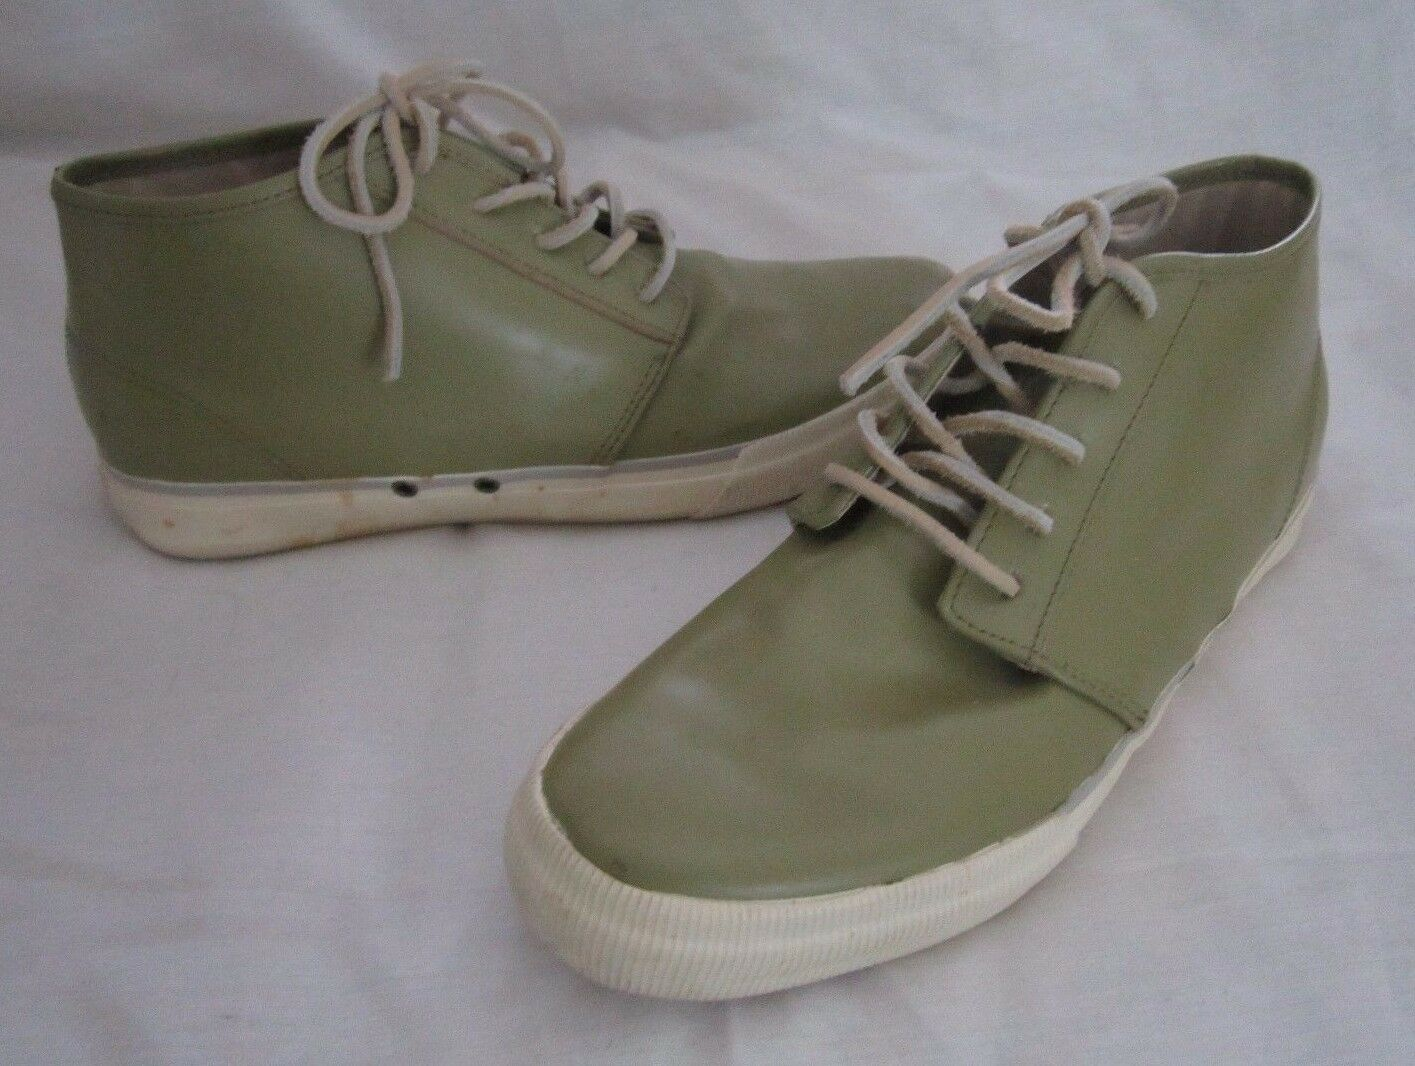 Sperry Top-Sider Get Wet Chukkas Green Leather Boat Deck Hi Top Shoes Mens 11 M